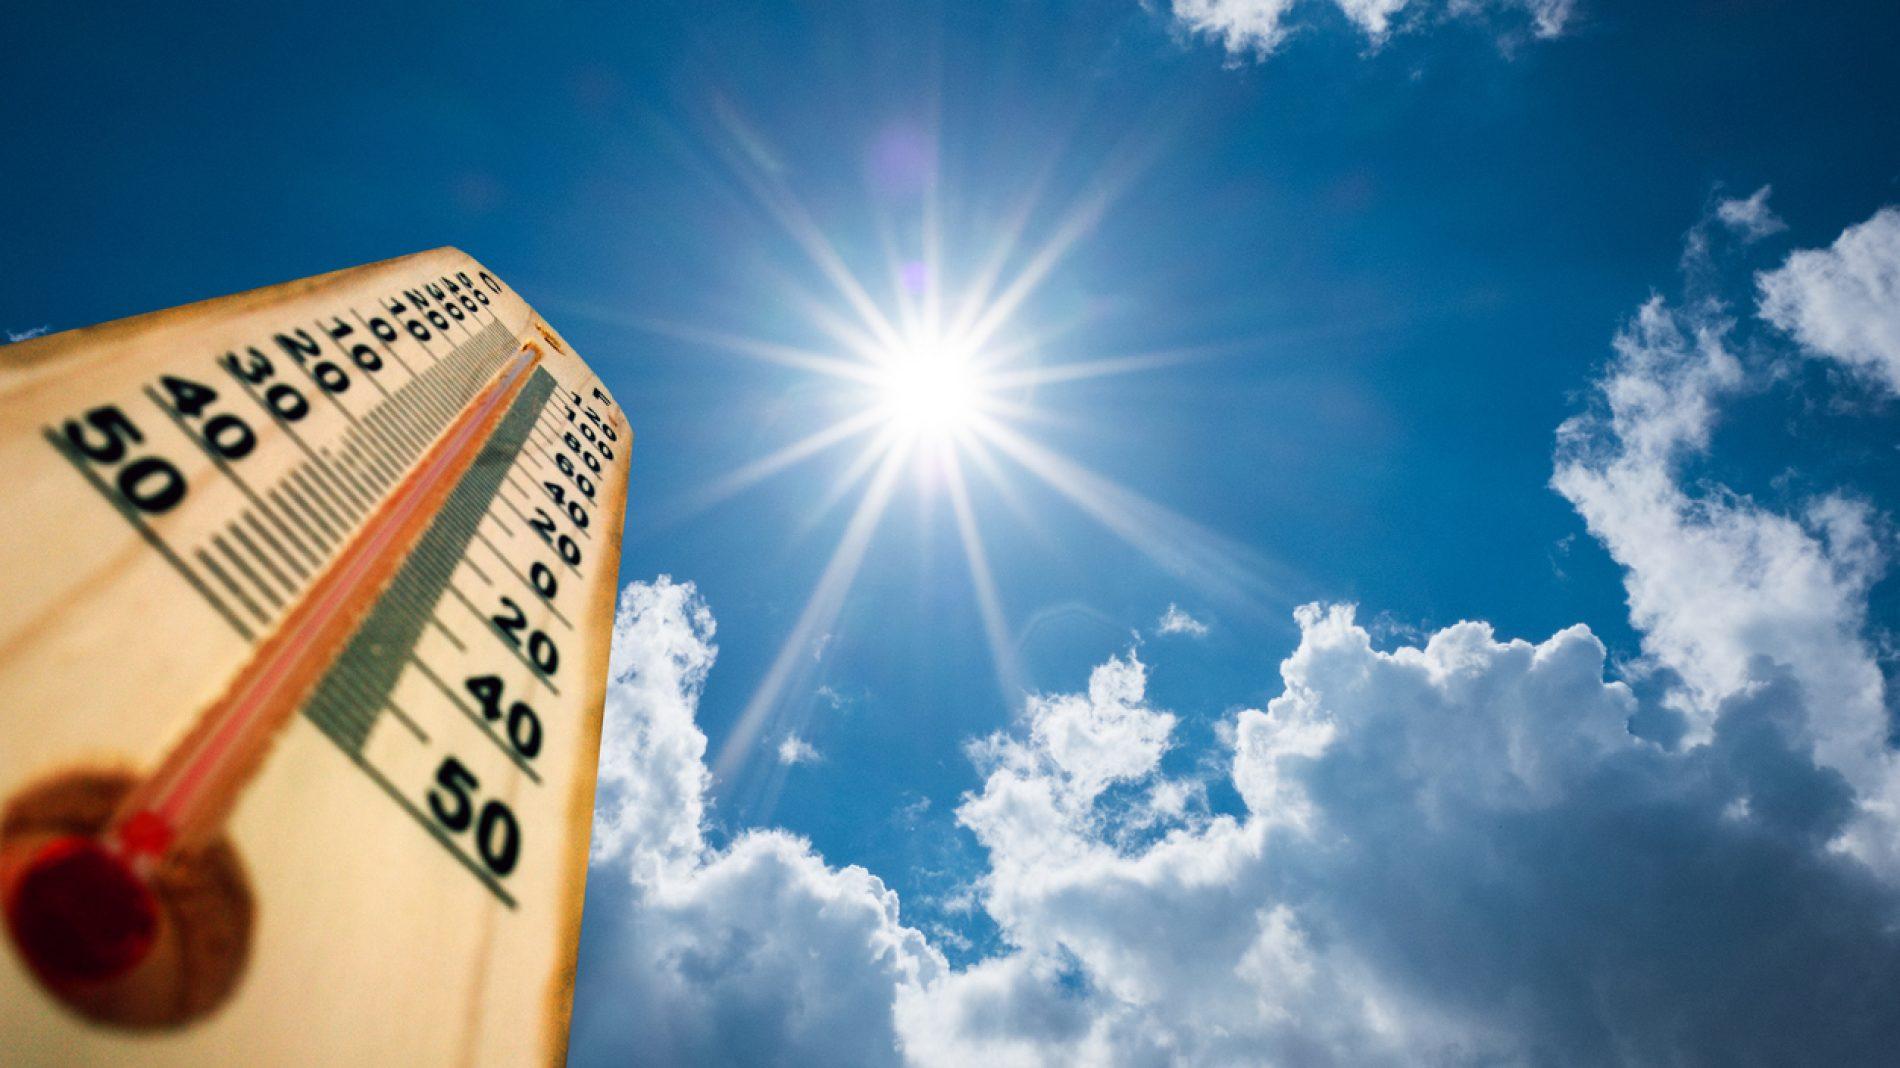 Rising temperatures due to climate change